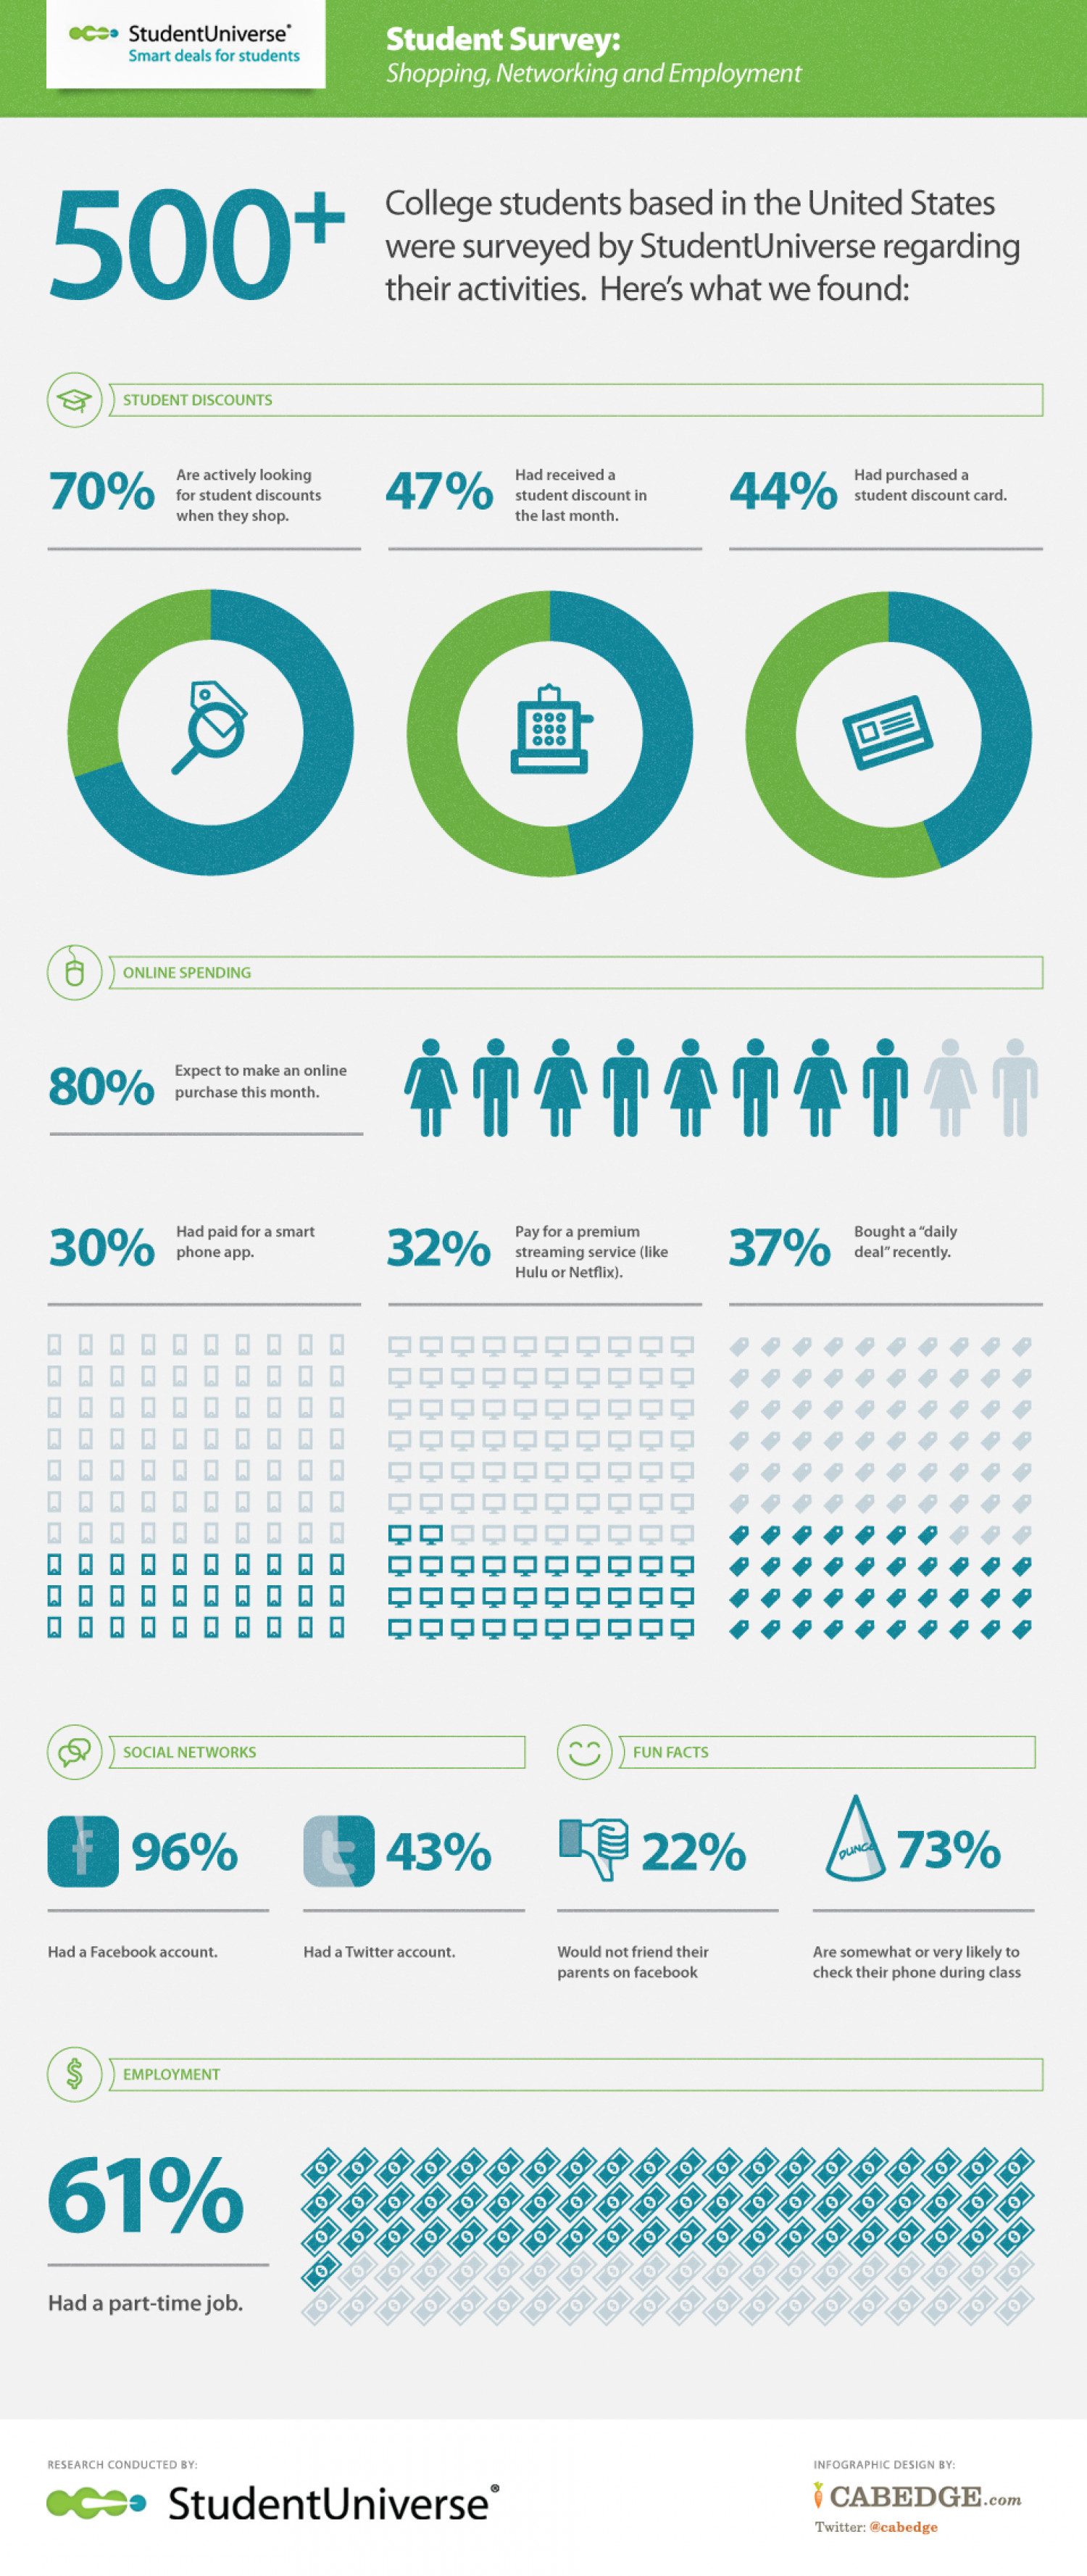 student shopping networking and employment infographic